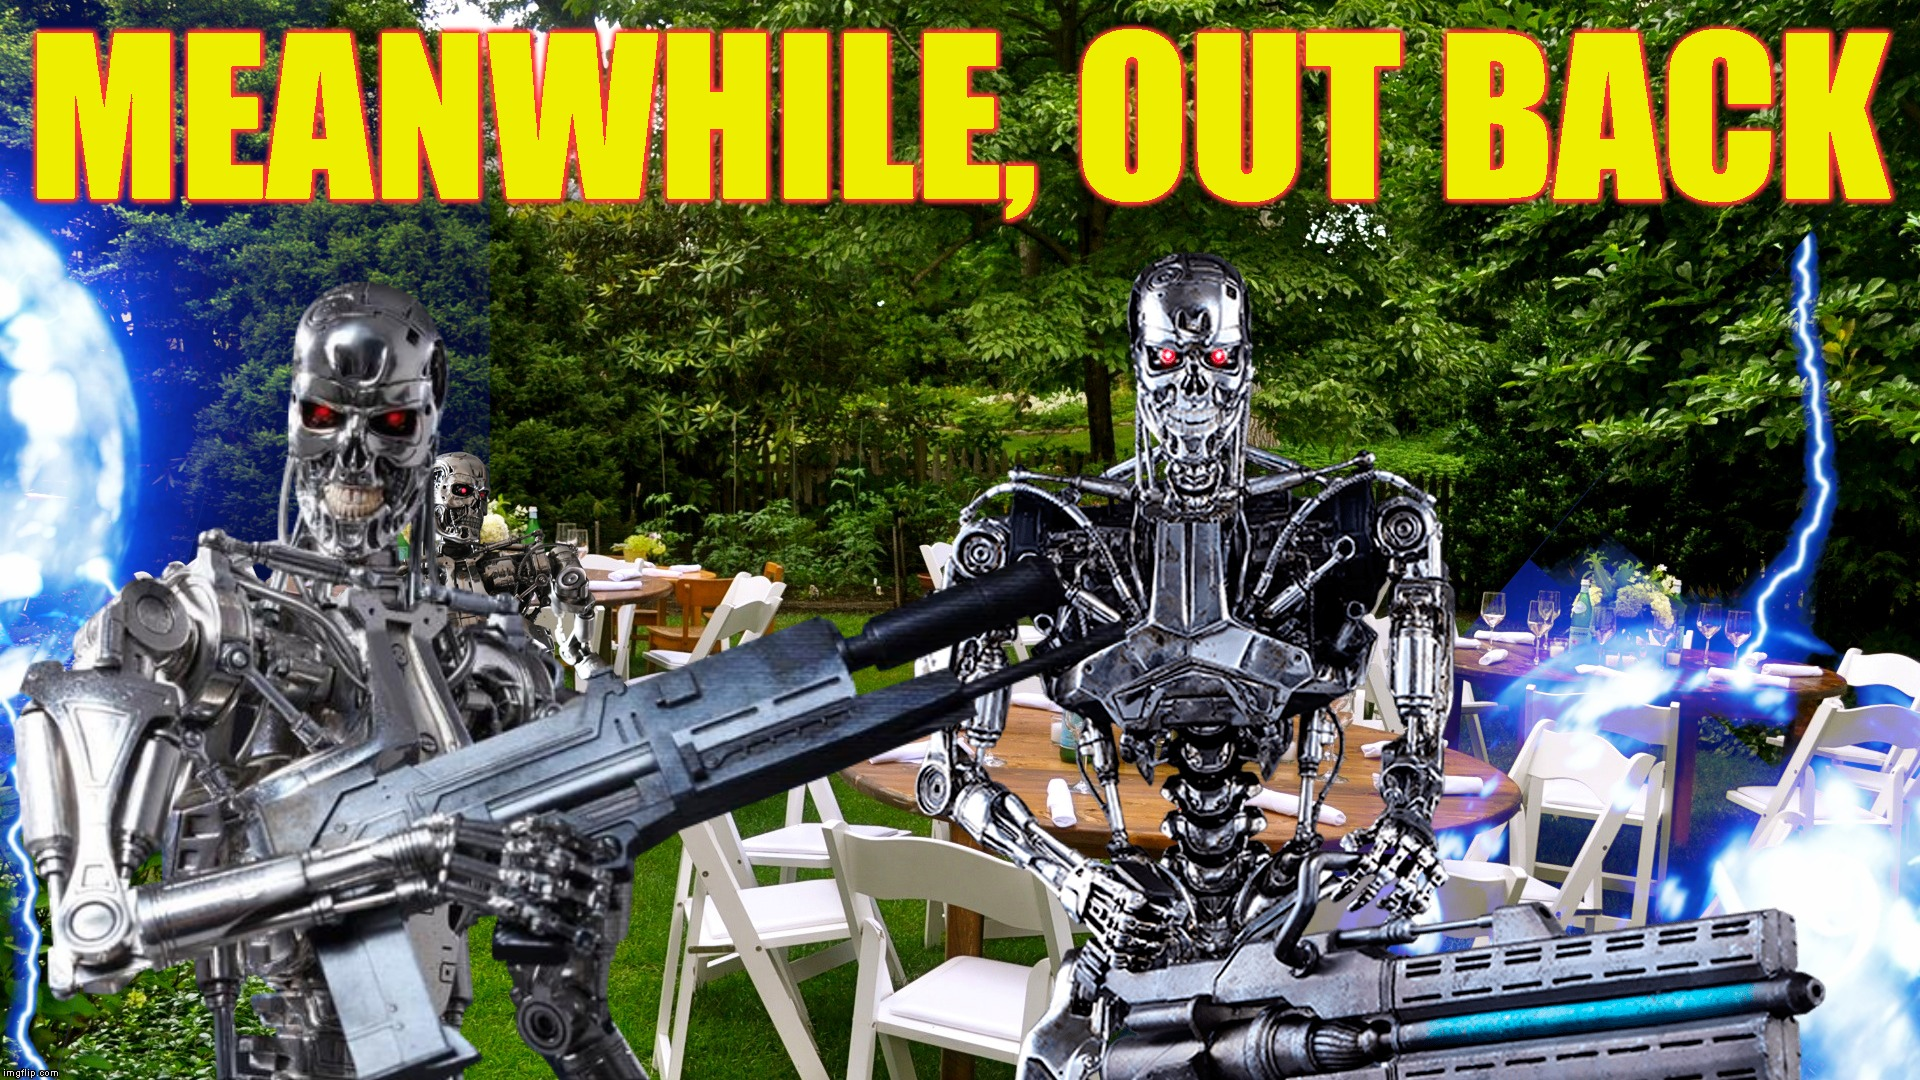 MEANWHILE, OUT BACK | made w/ Imgflip meme maker